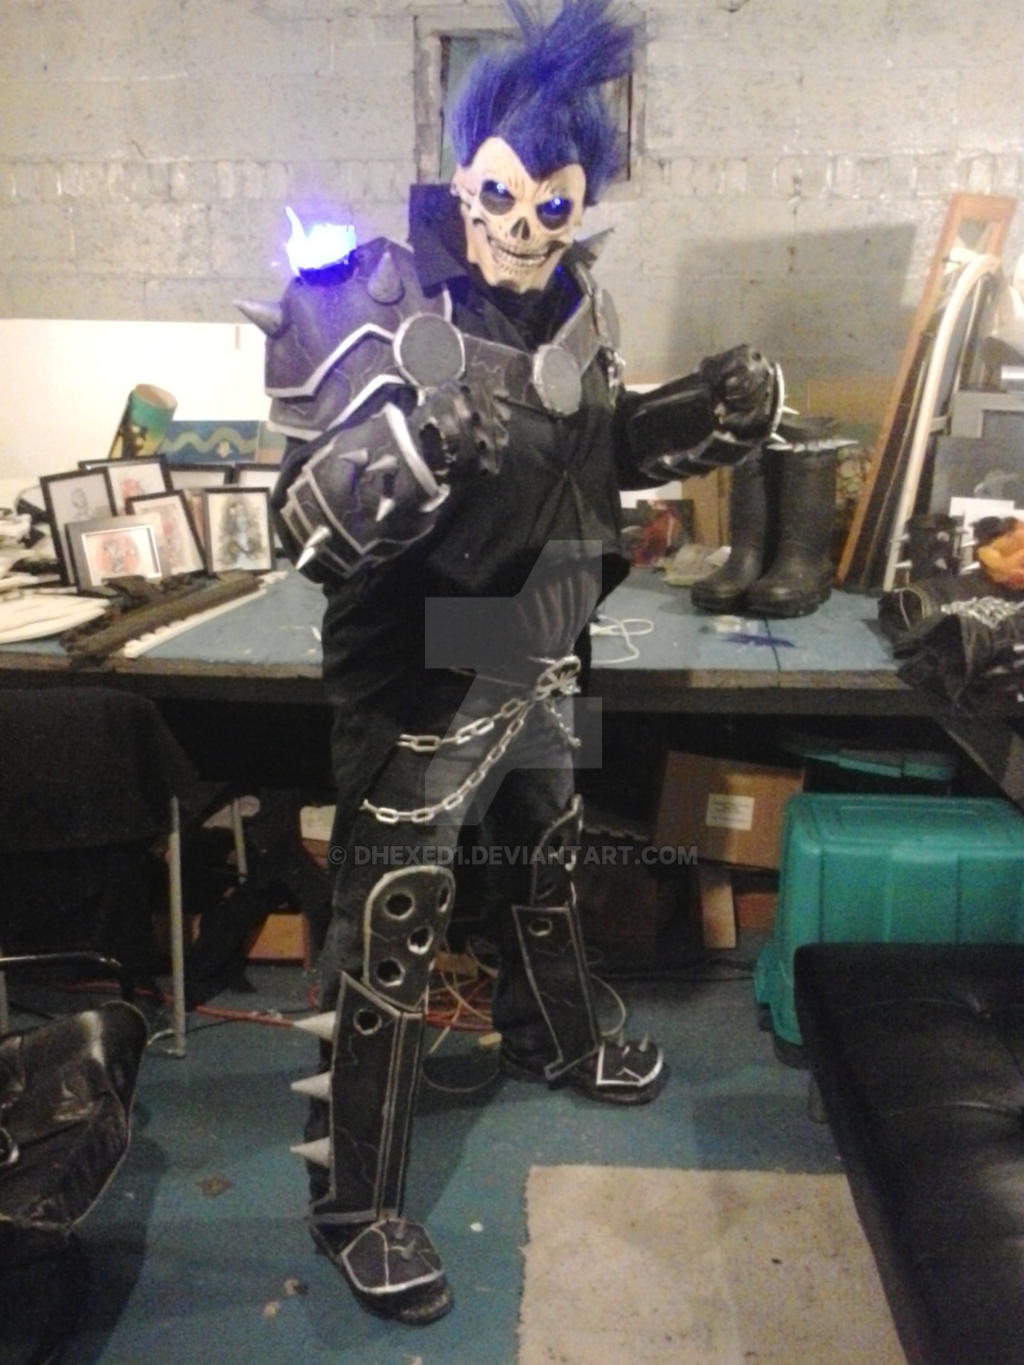 New ghost rider blue cosplay by dhexed1 on deviantart solutioingenieria Gallery